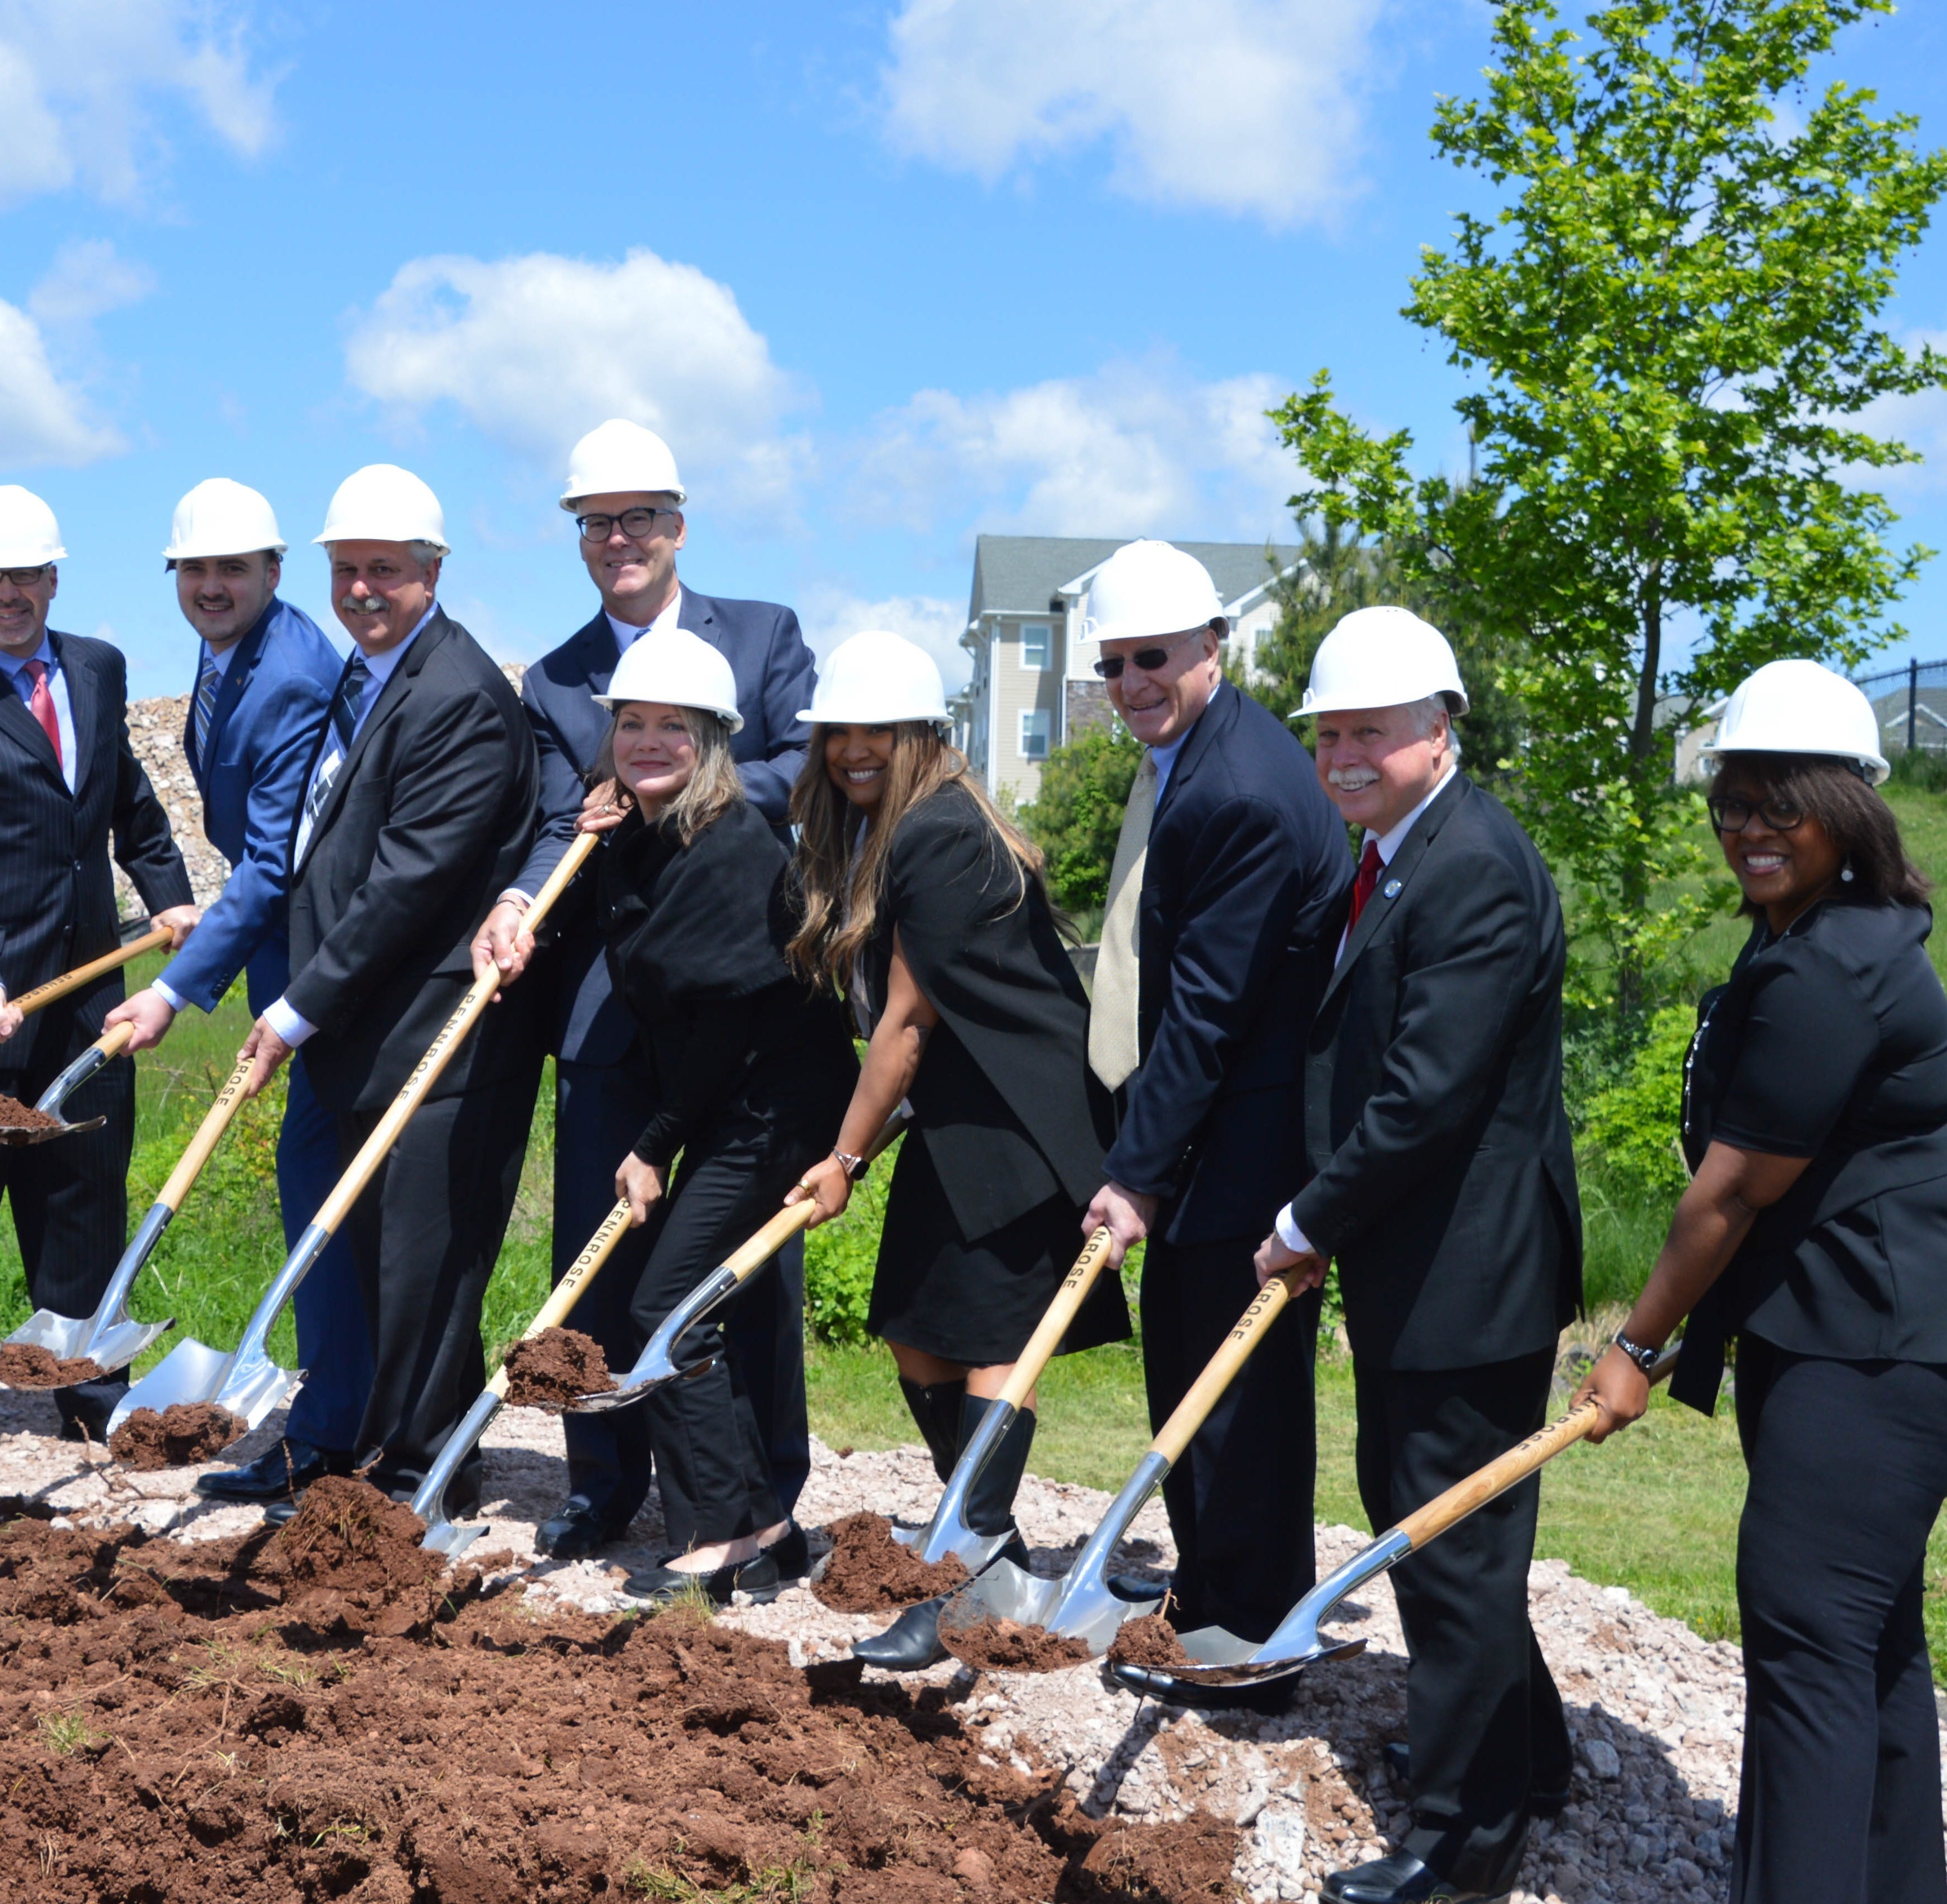 Edison: Affordable housing project breaks ground at Camp Kilmer